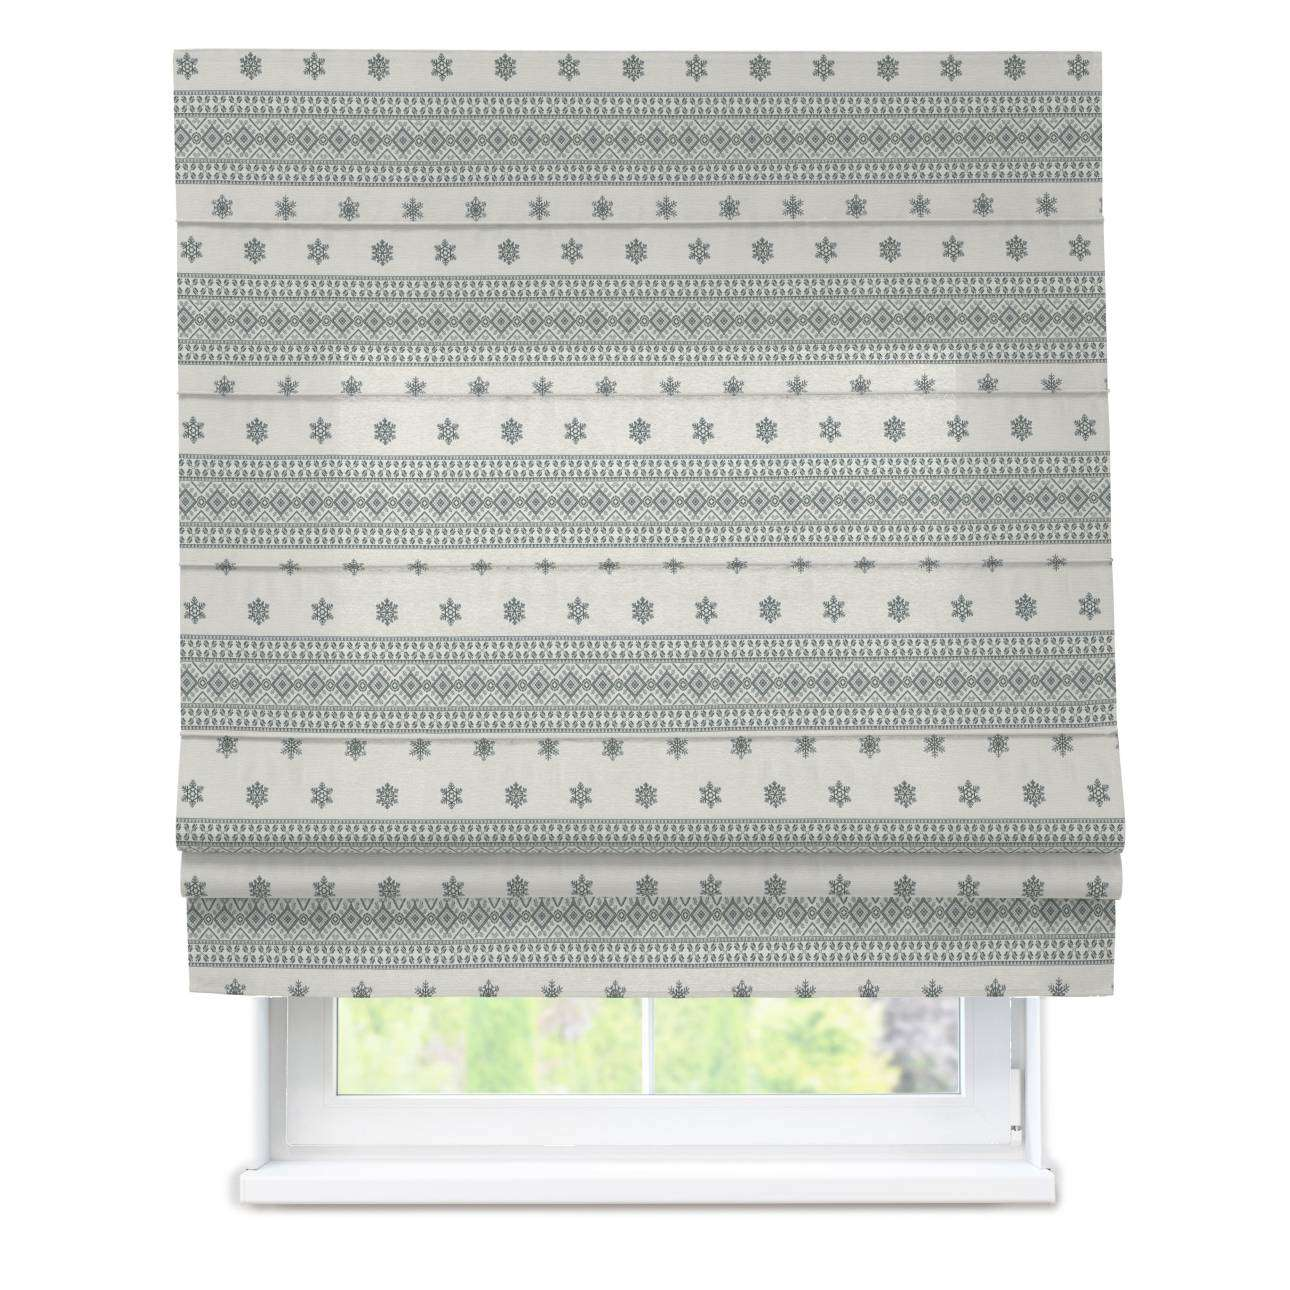 Padva roman blind  80 x 170 cm (31.5 x 67 inch) in collection Christmas, fabric: 630-25